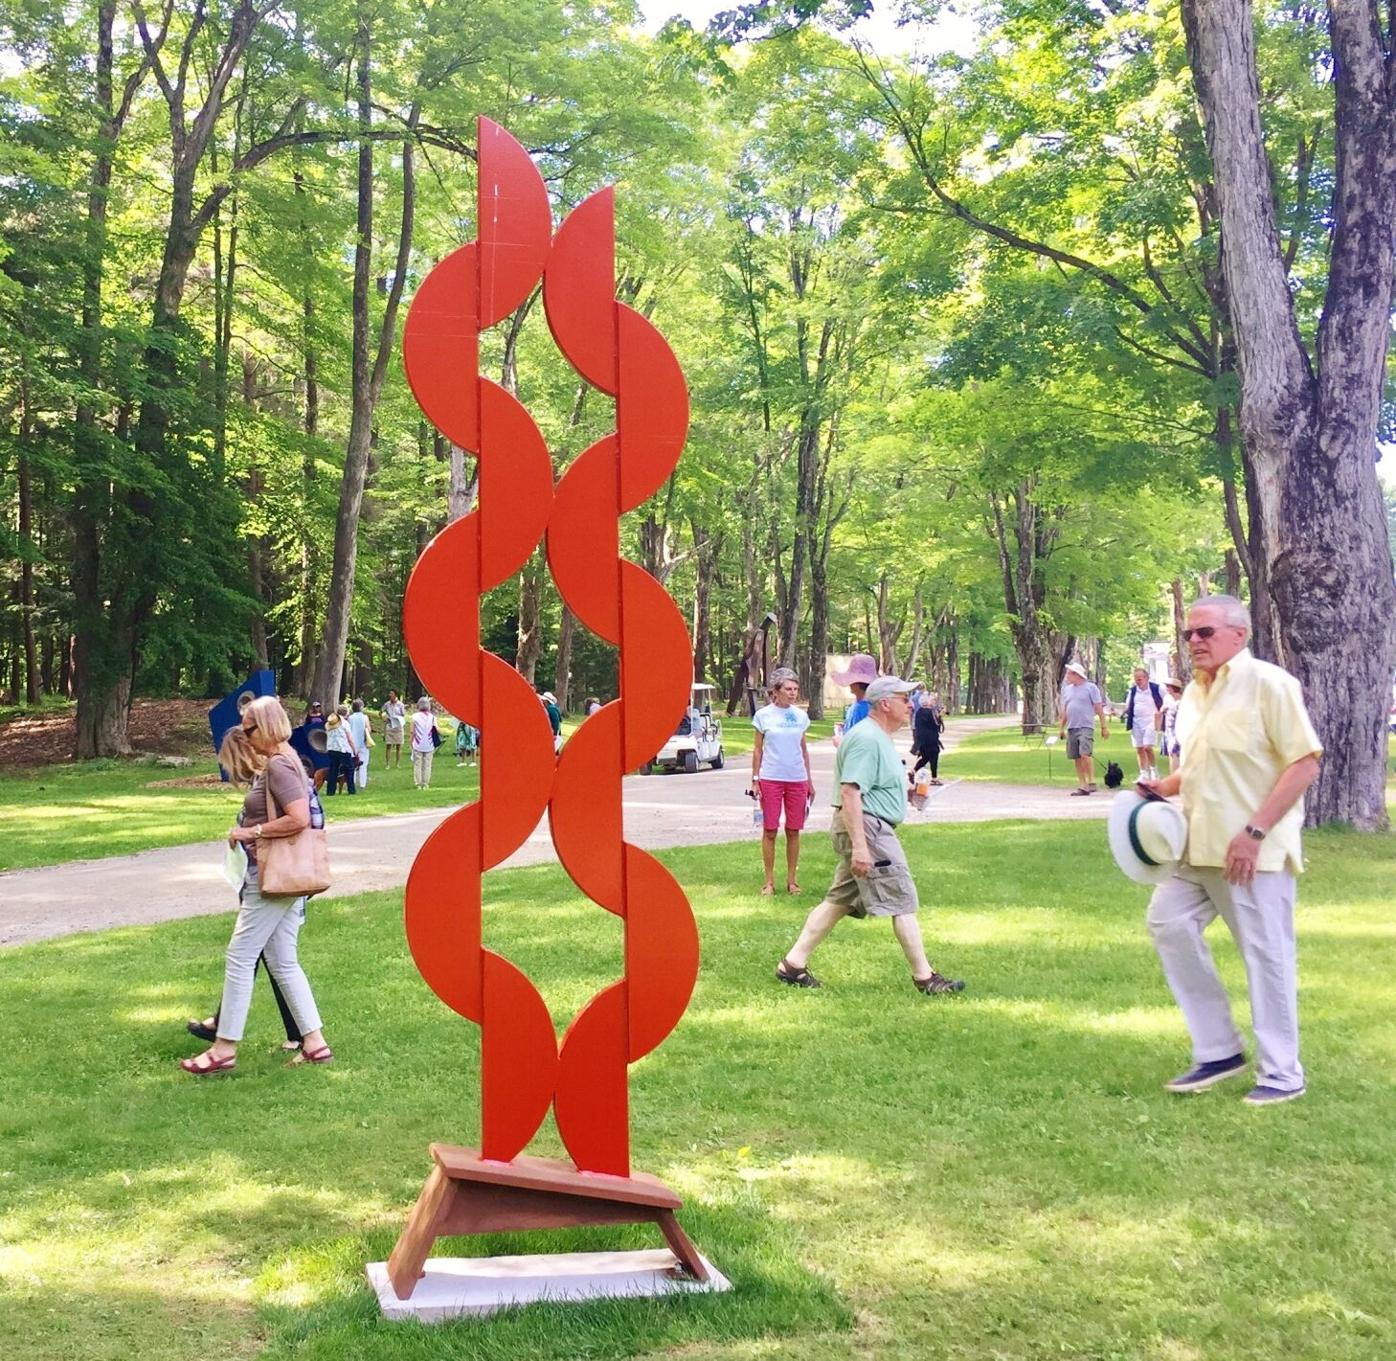 The Scene | SculptureNow is 'Sculpture Wow' at The Mount